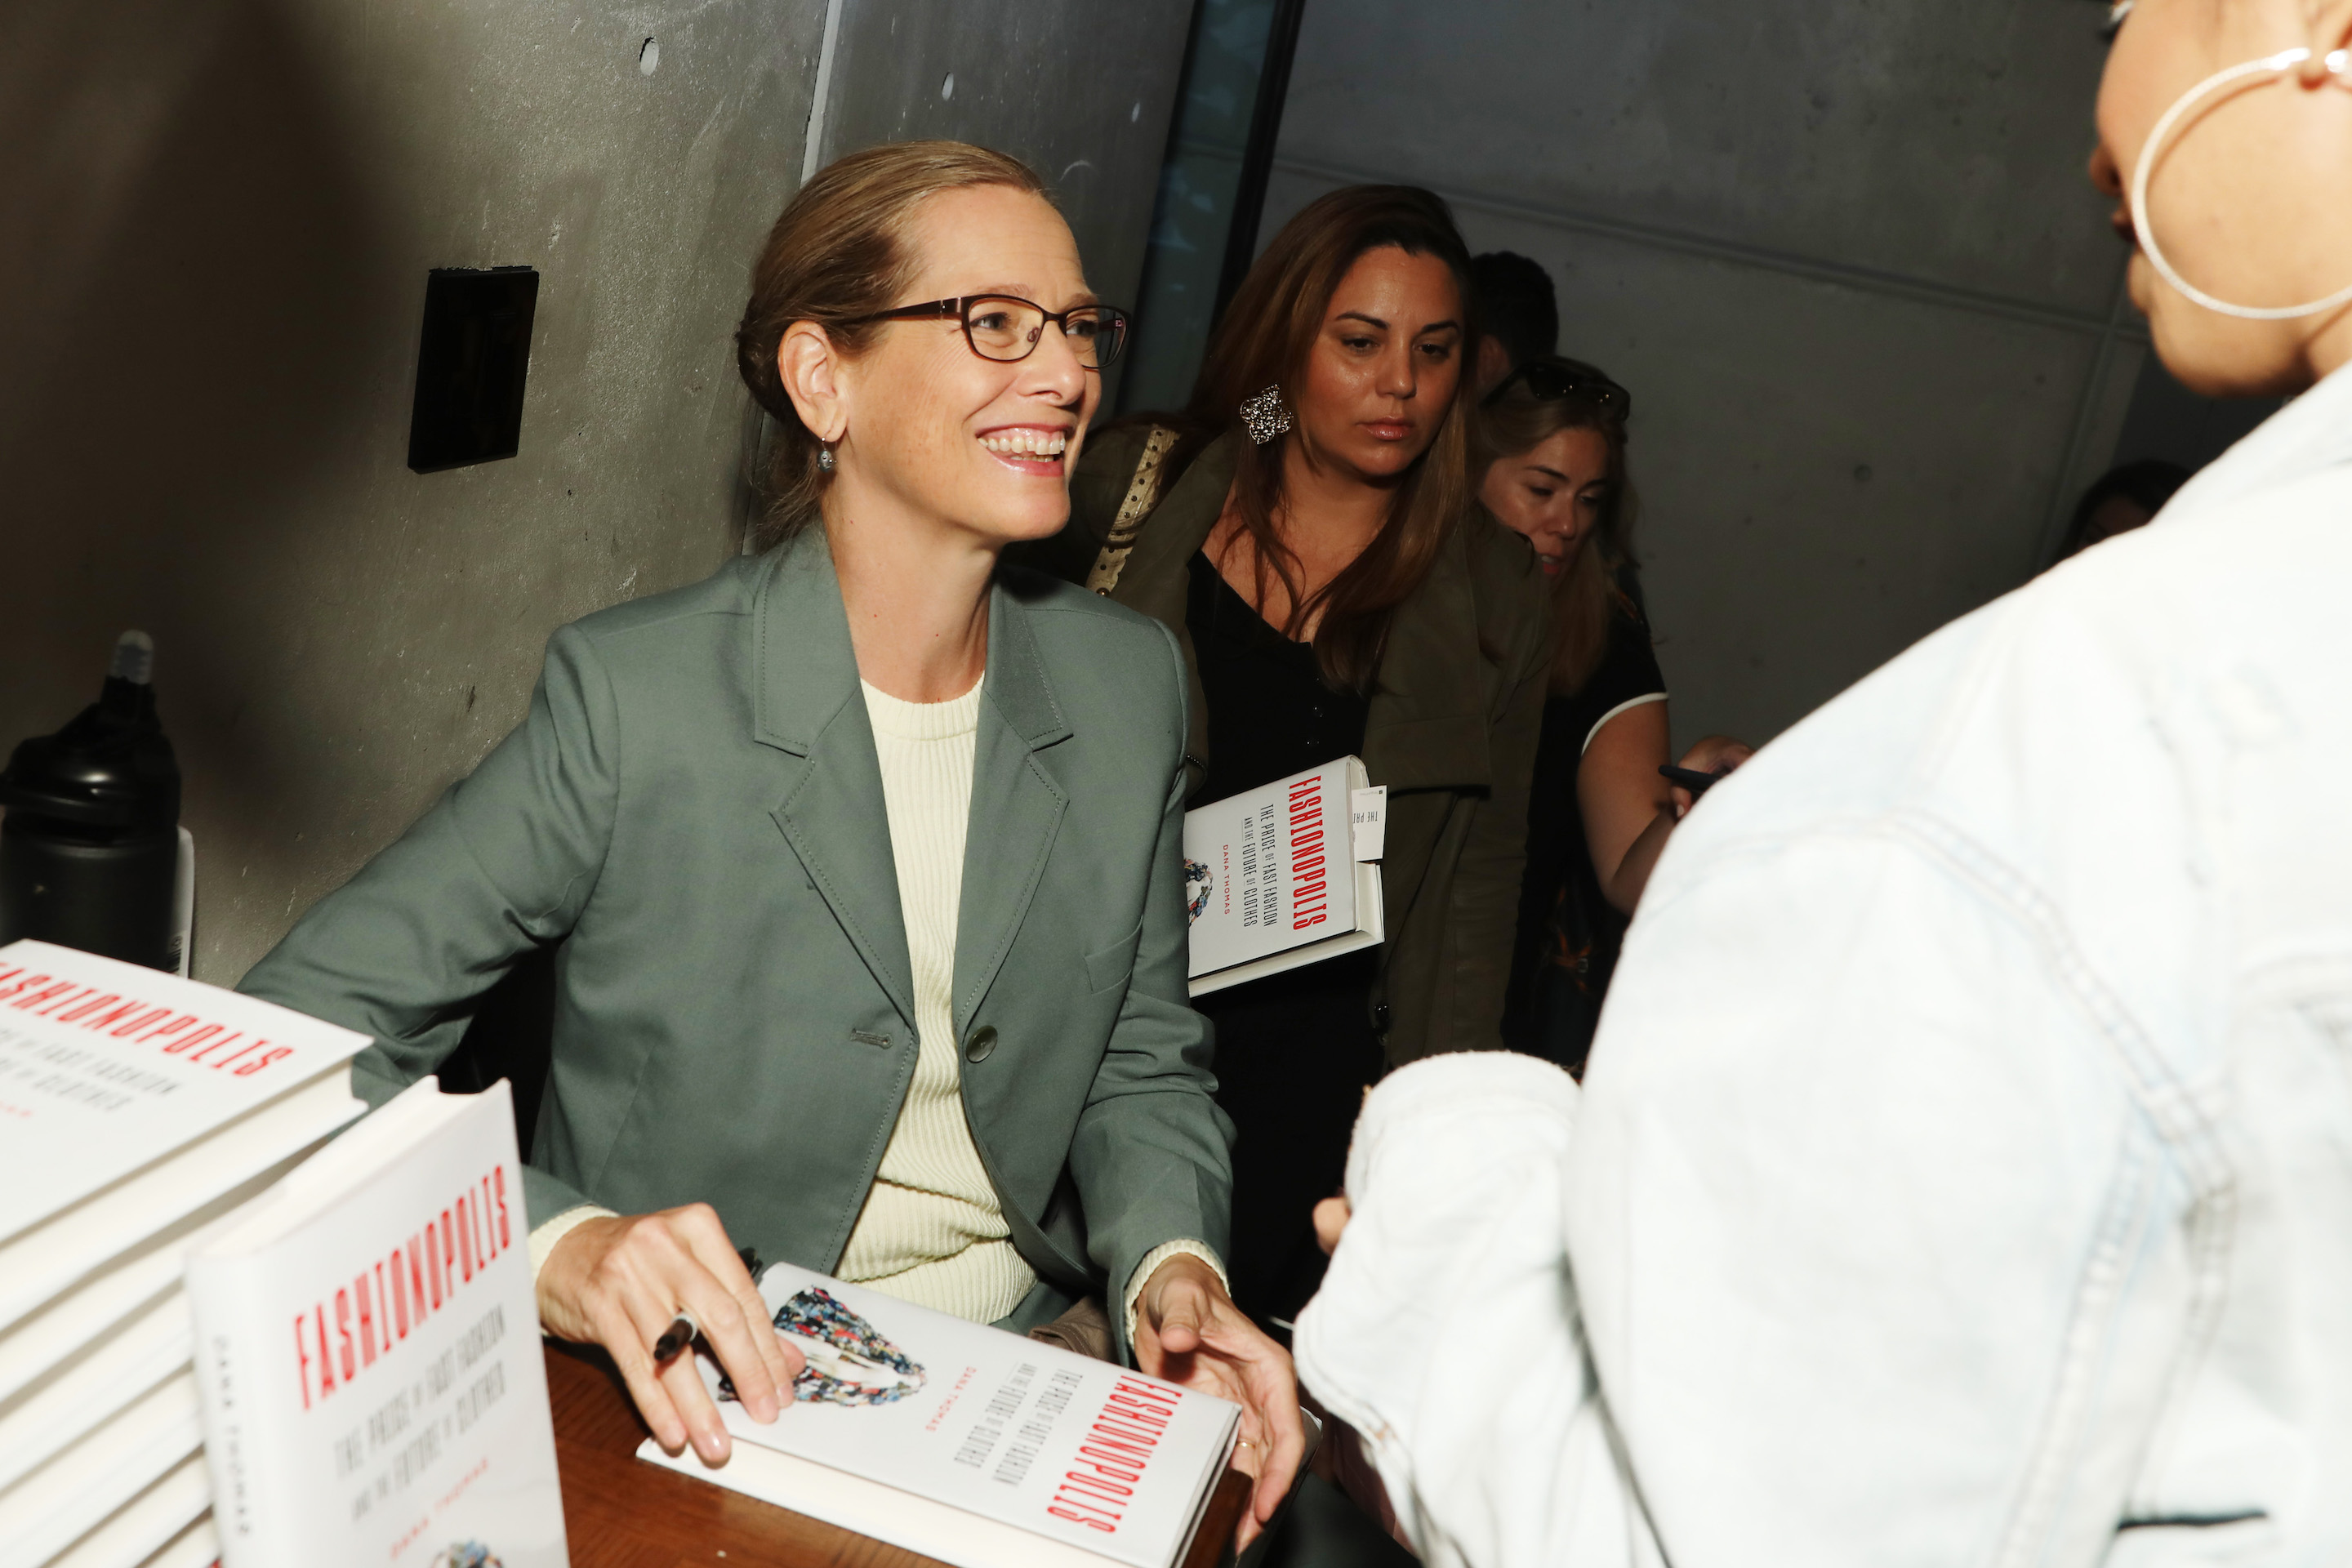 Dana Thomas, author of Fashionopolis, at a Sept. 6 book signing during New York Fashion Week.